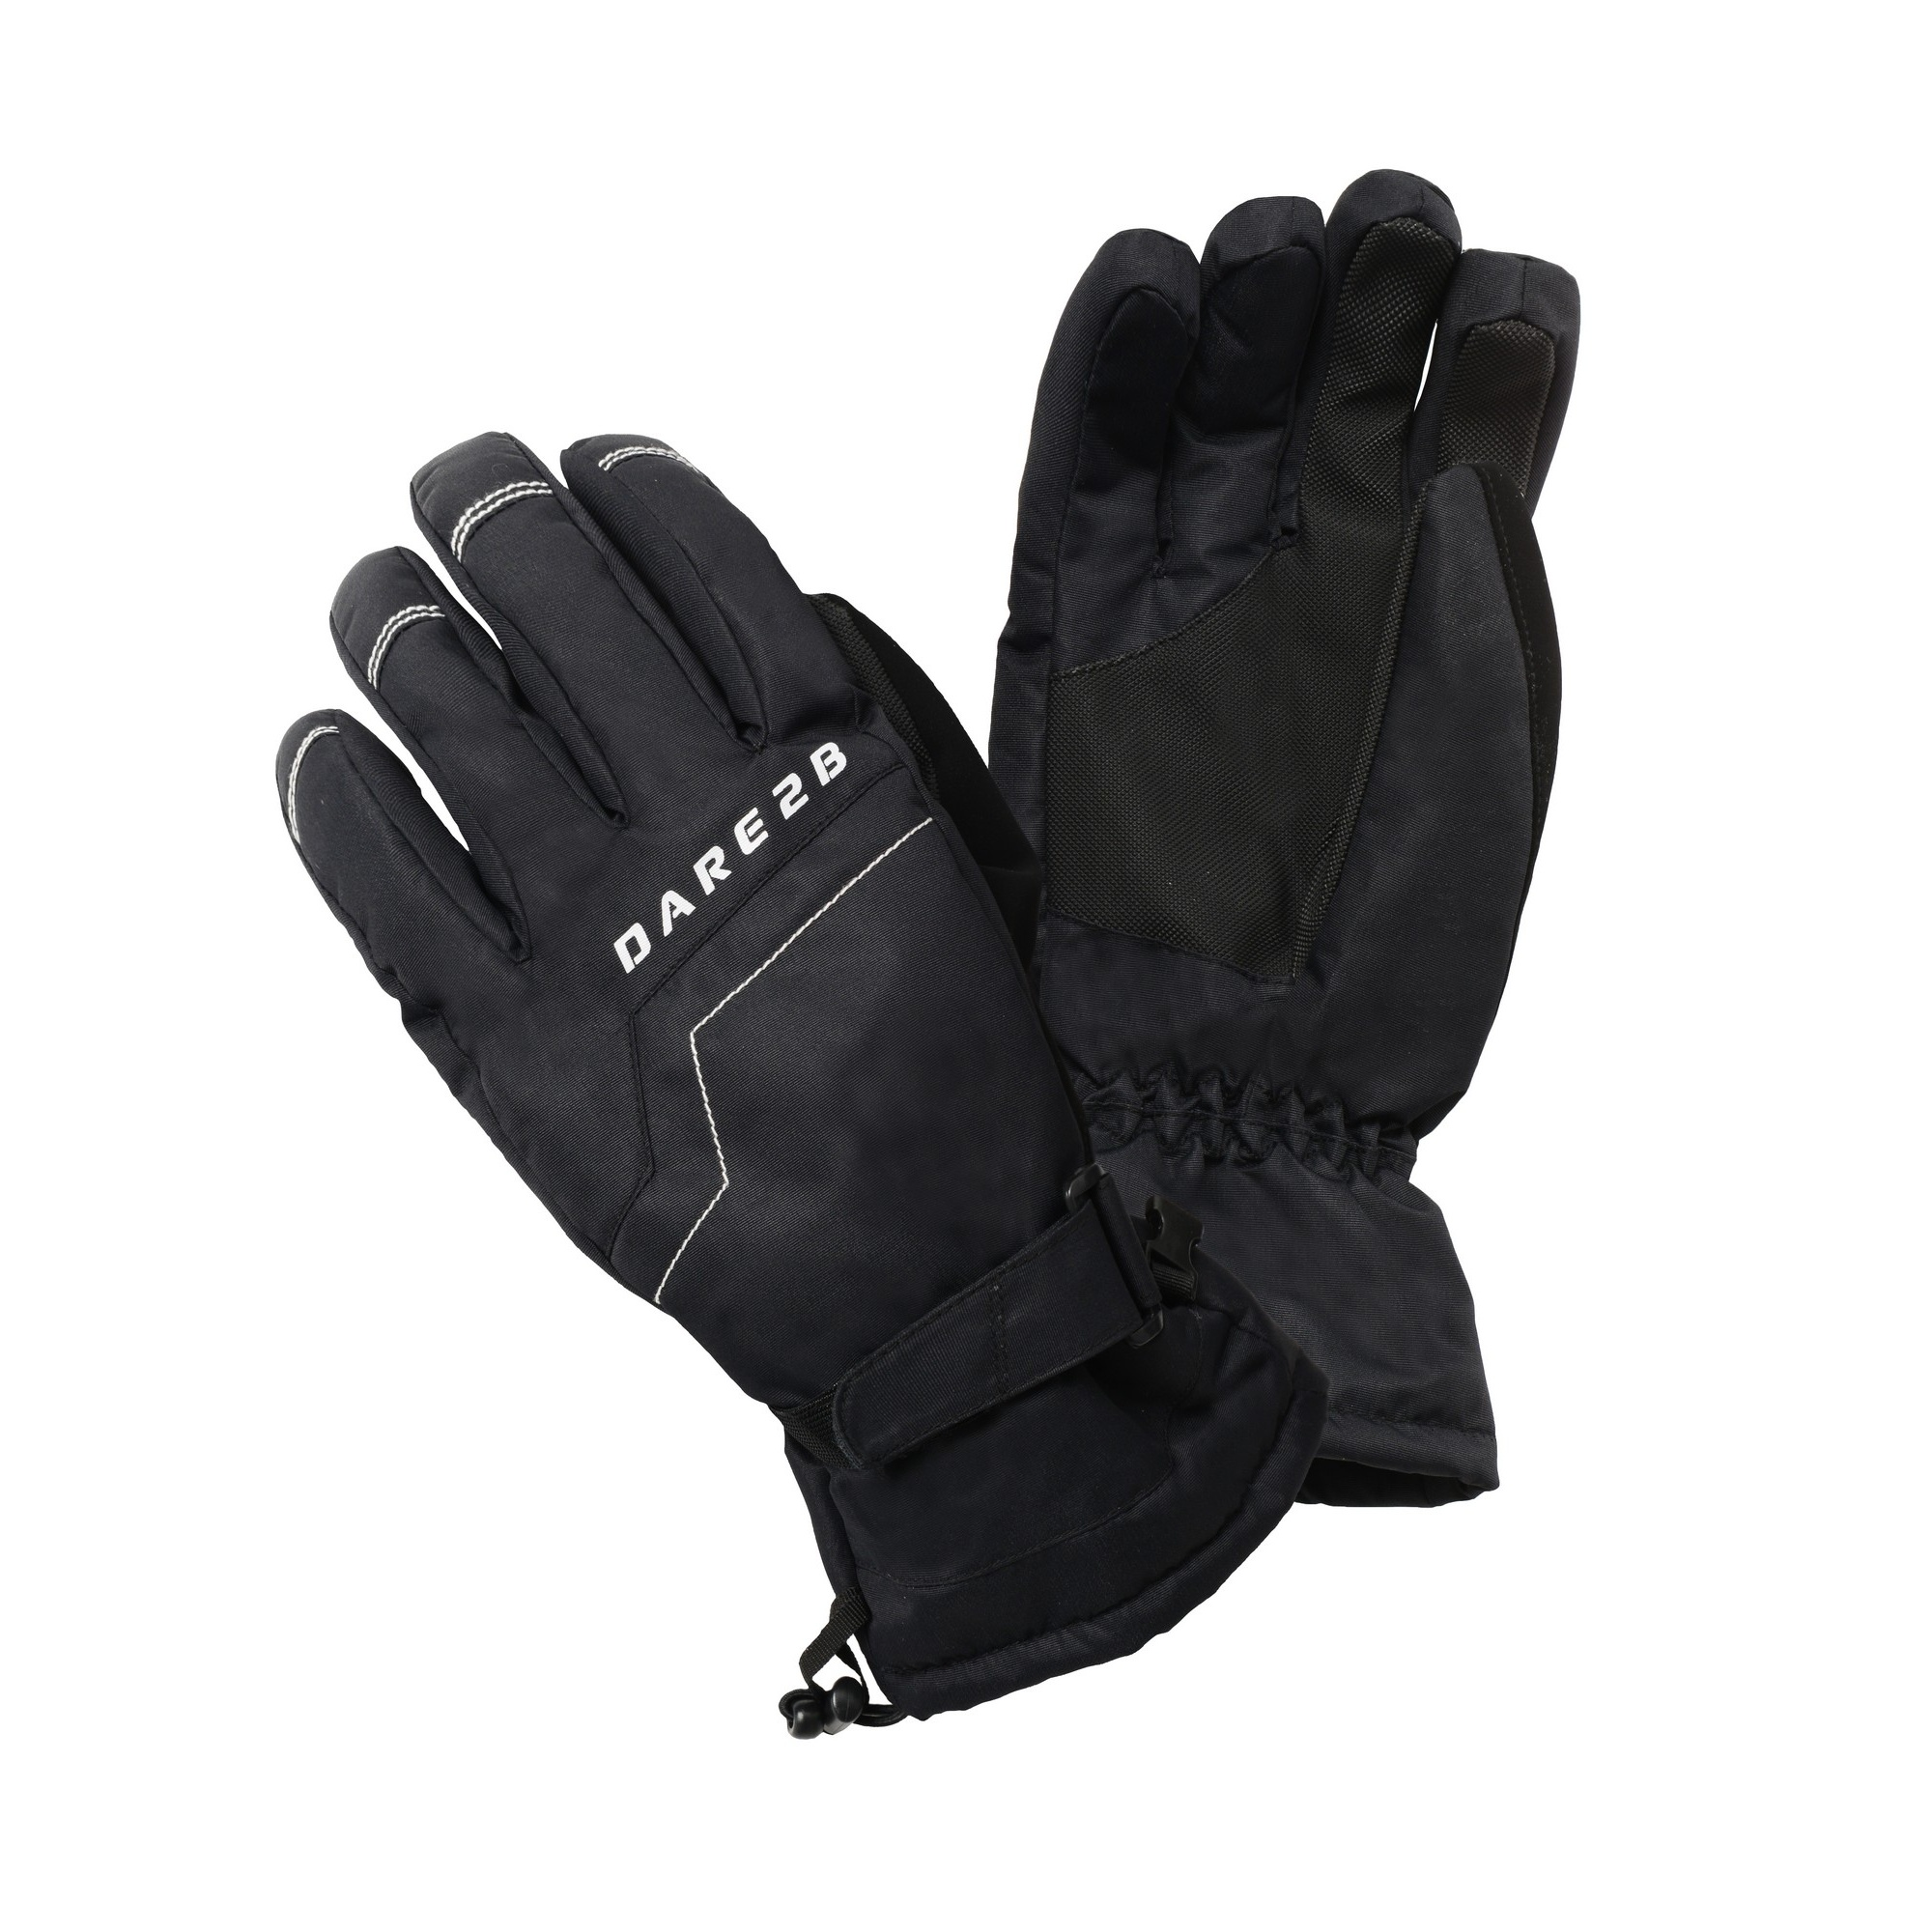 Mens ski gloves xl - Picture 2 Of 4